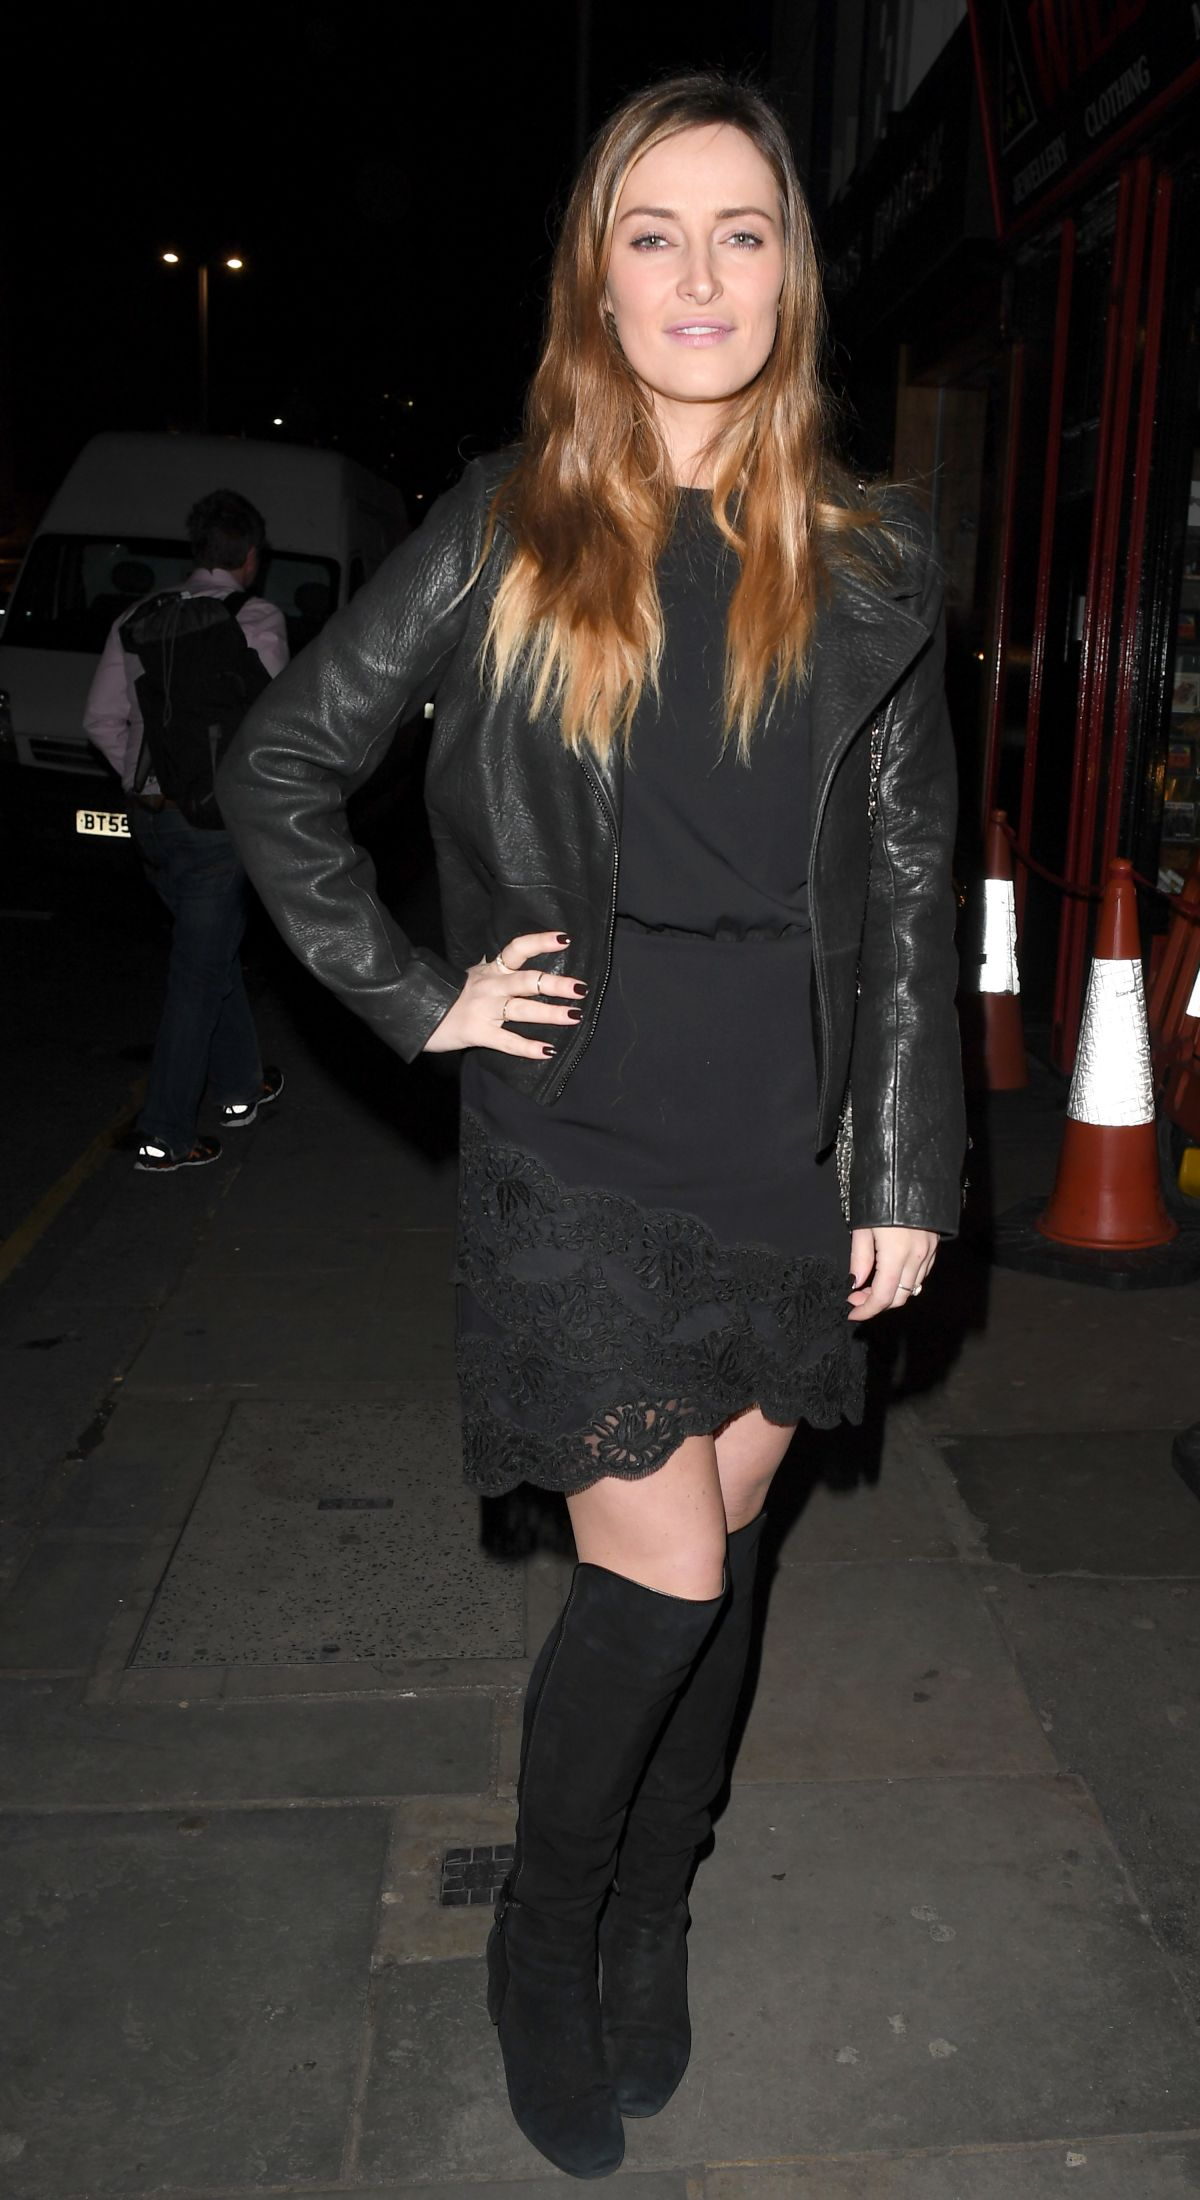 FRANCESCA NEWMAN-YOUNG Arrives at Raffles Night Club in London 03/02/2017